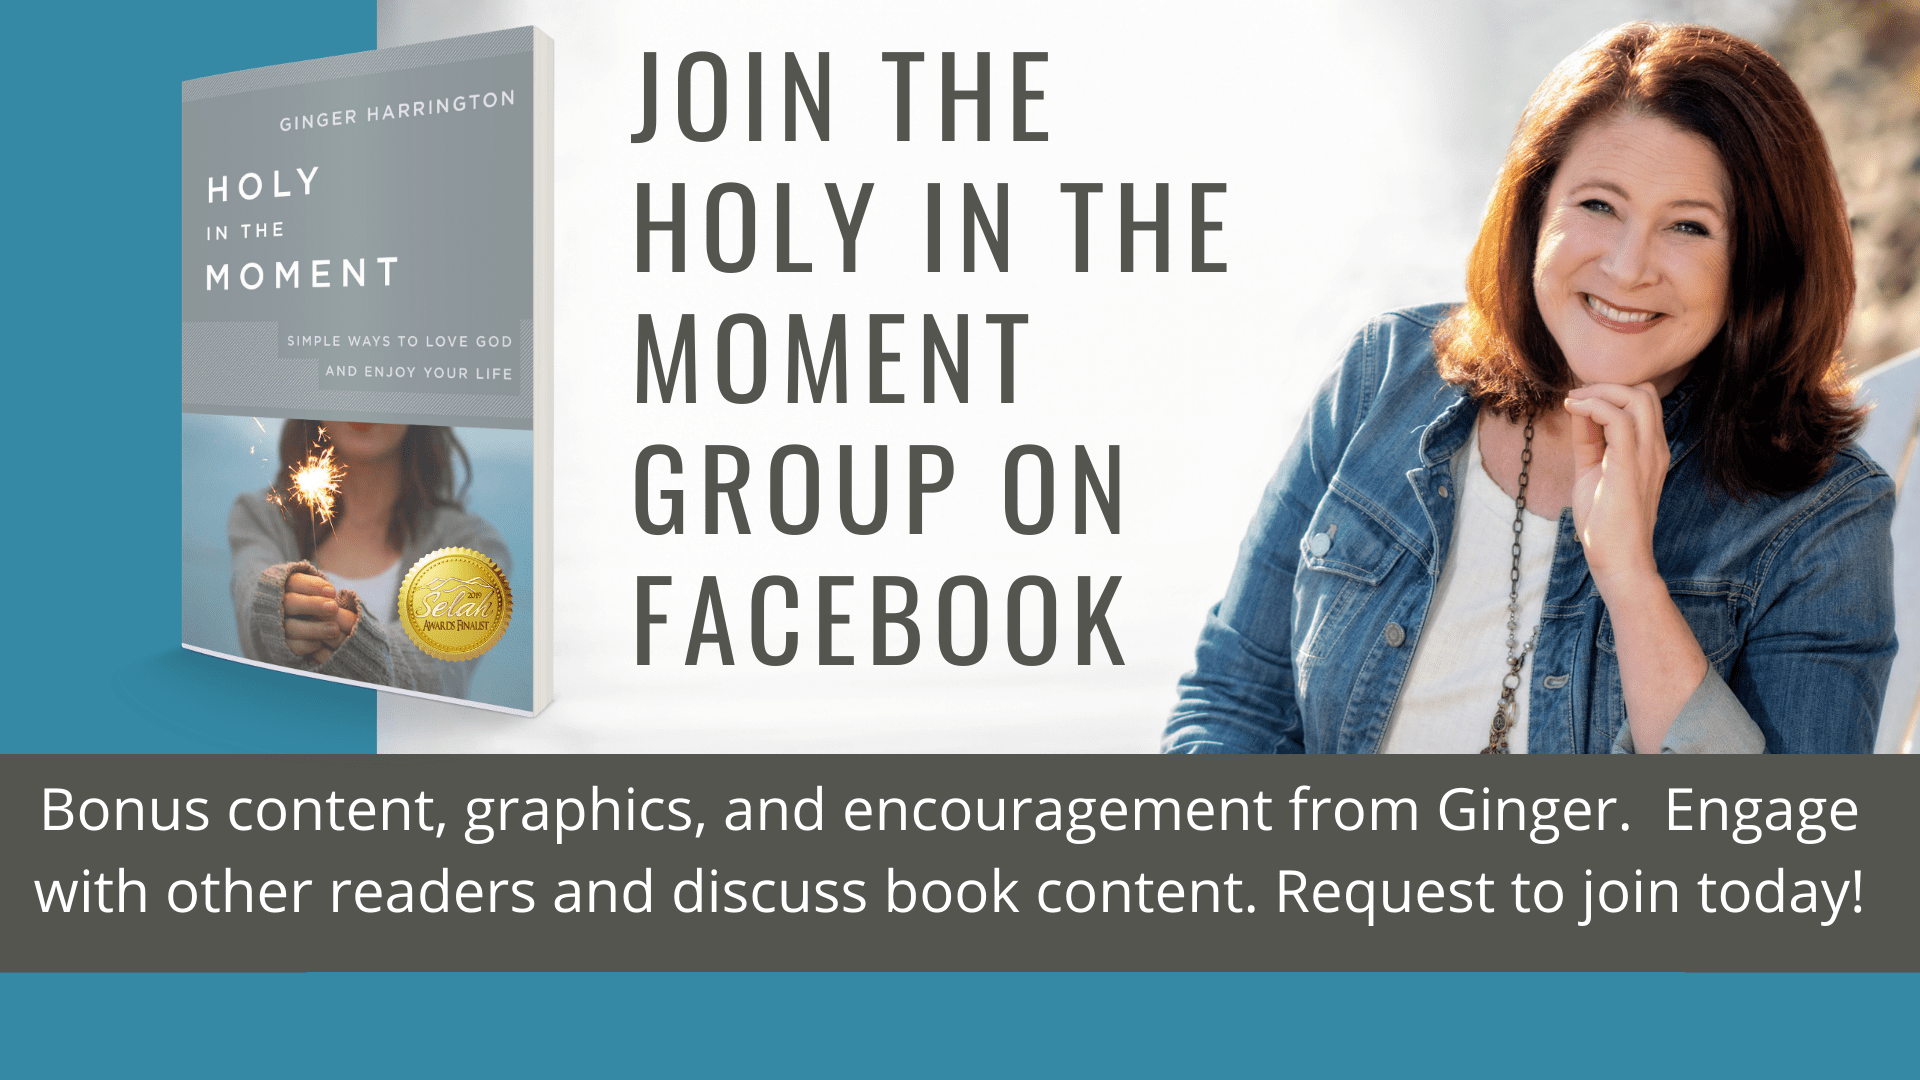 Join the Holy in the Moment Community on Facebook to practice simple ways and holy habits for a deeper relationship with God, others, and yourself.